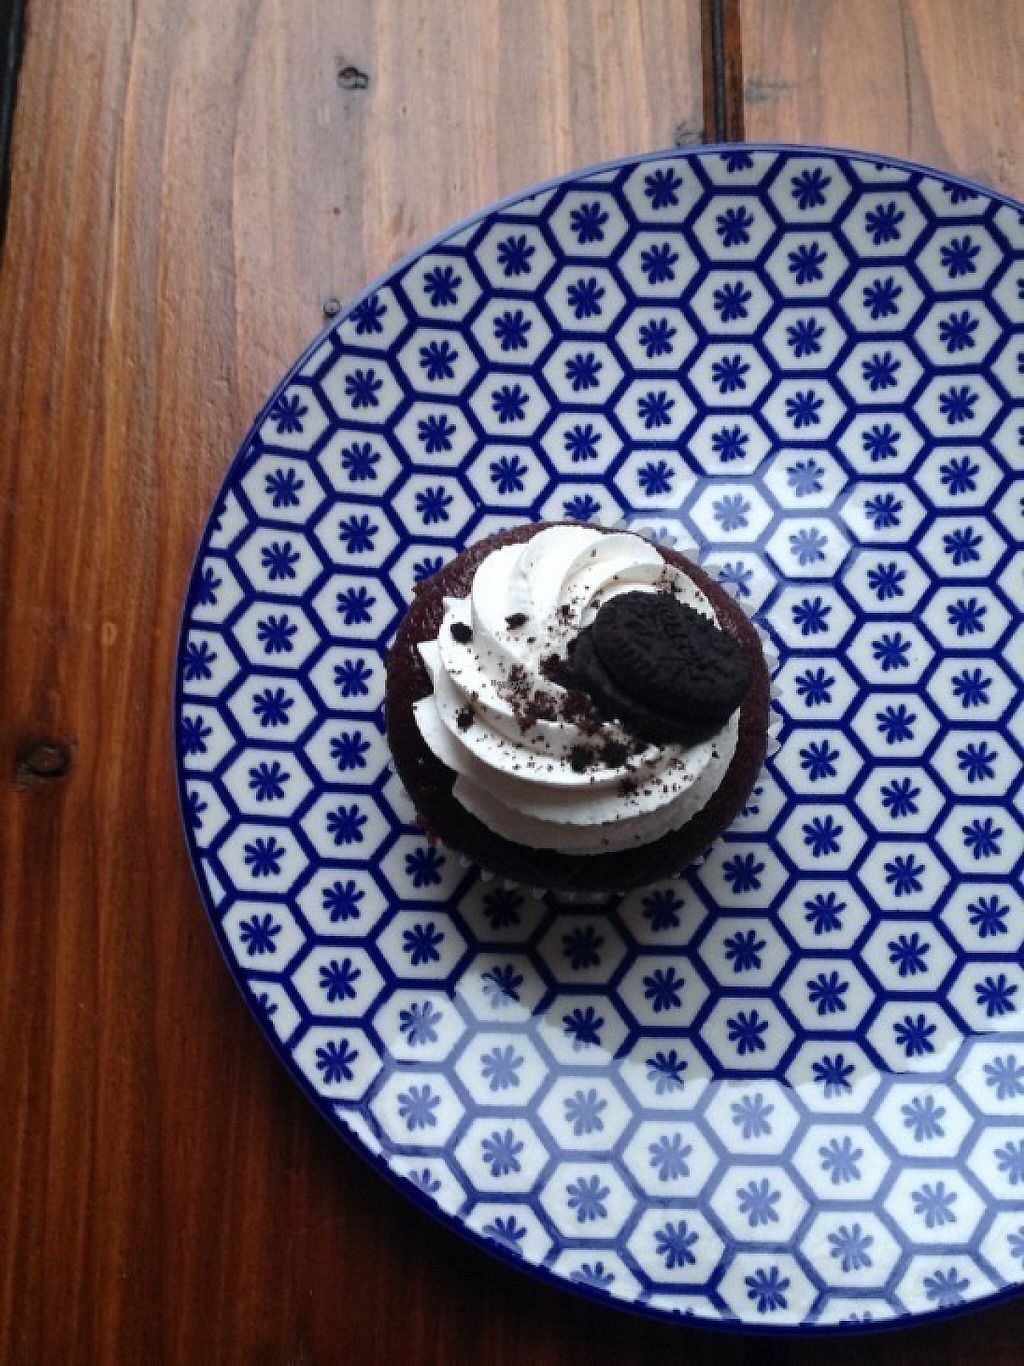 """Photo of Marshalls Mum  by <a href=""""/members/profile/ViolaceousViolin"""">ViolaceousViolin</a> <br/>Vegan Cookies&Cream Cupcake <br/> February 14, 2017  - <a href='/contact/abuse/image/87169/226547'>Report</a>"""